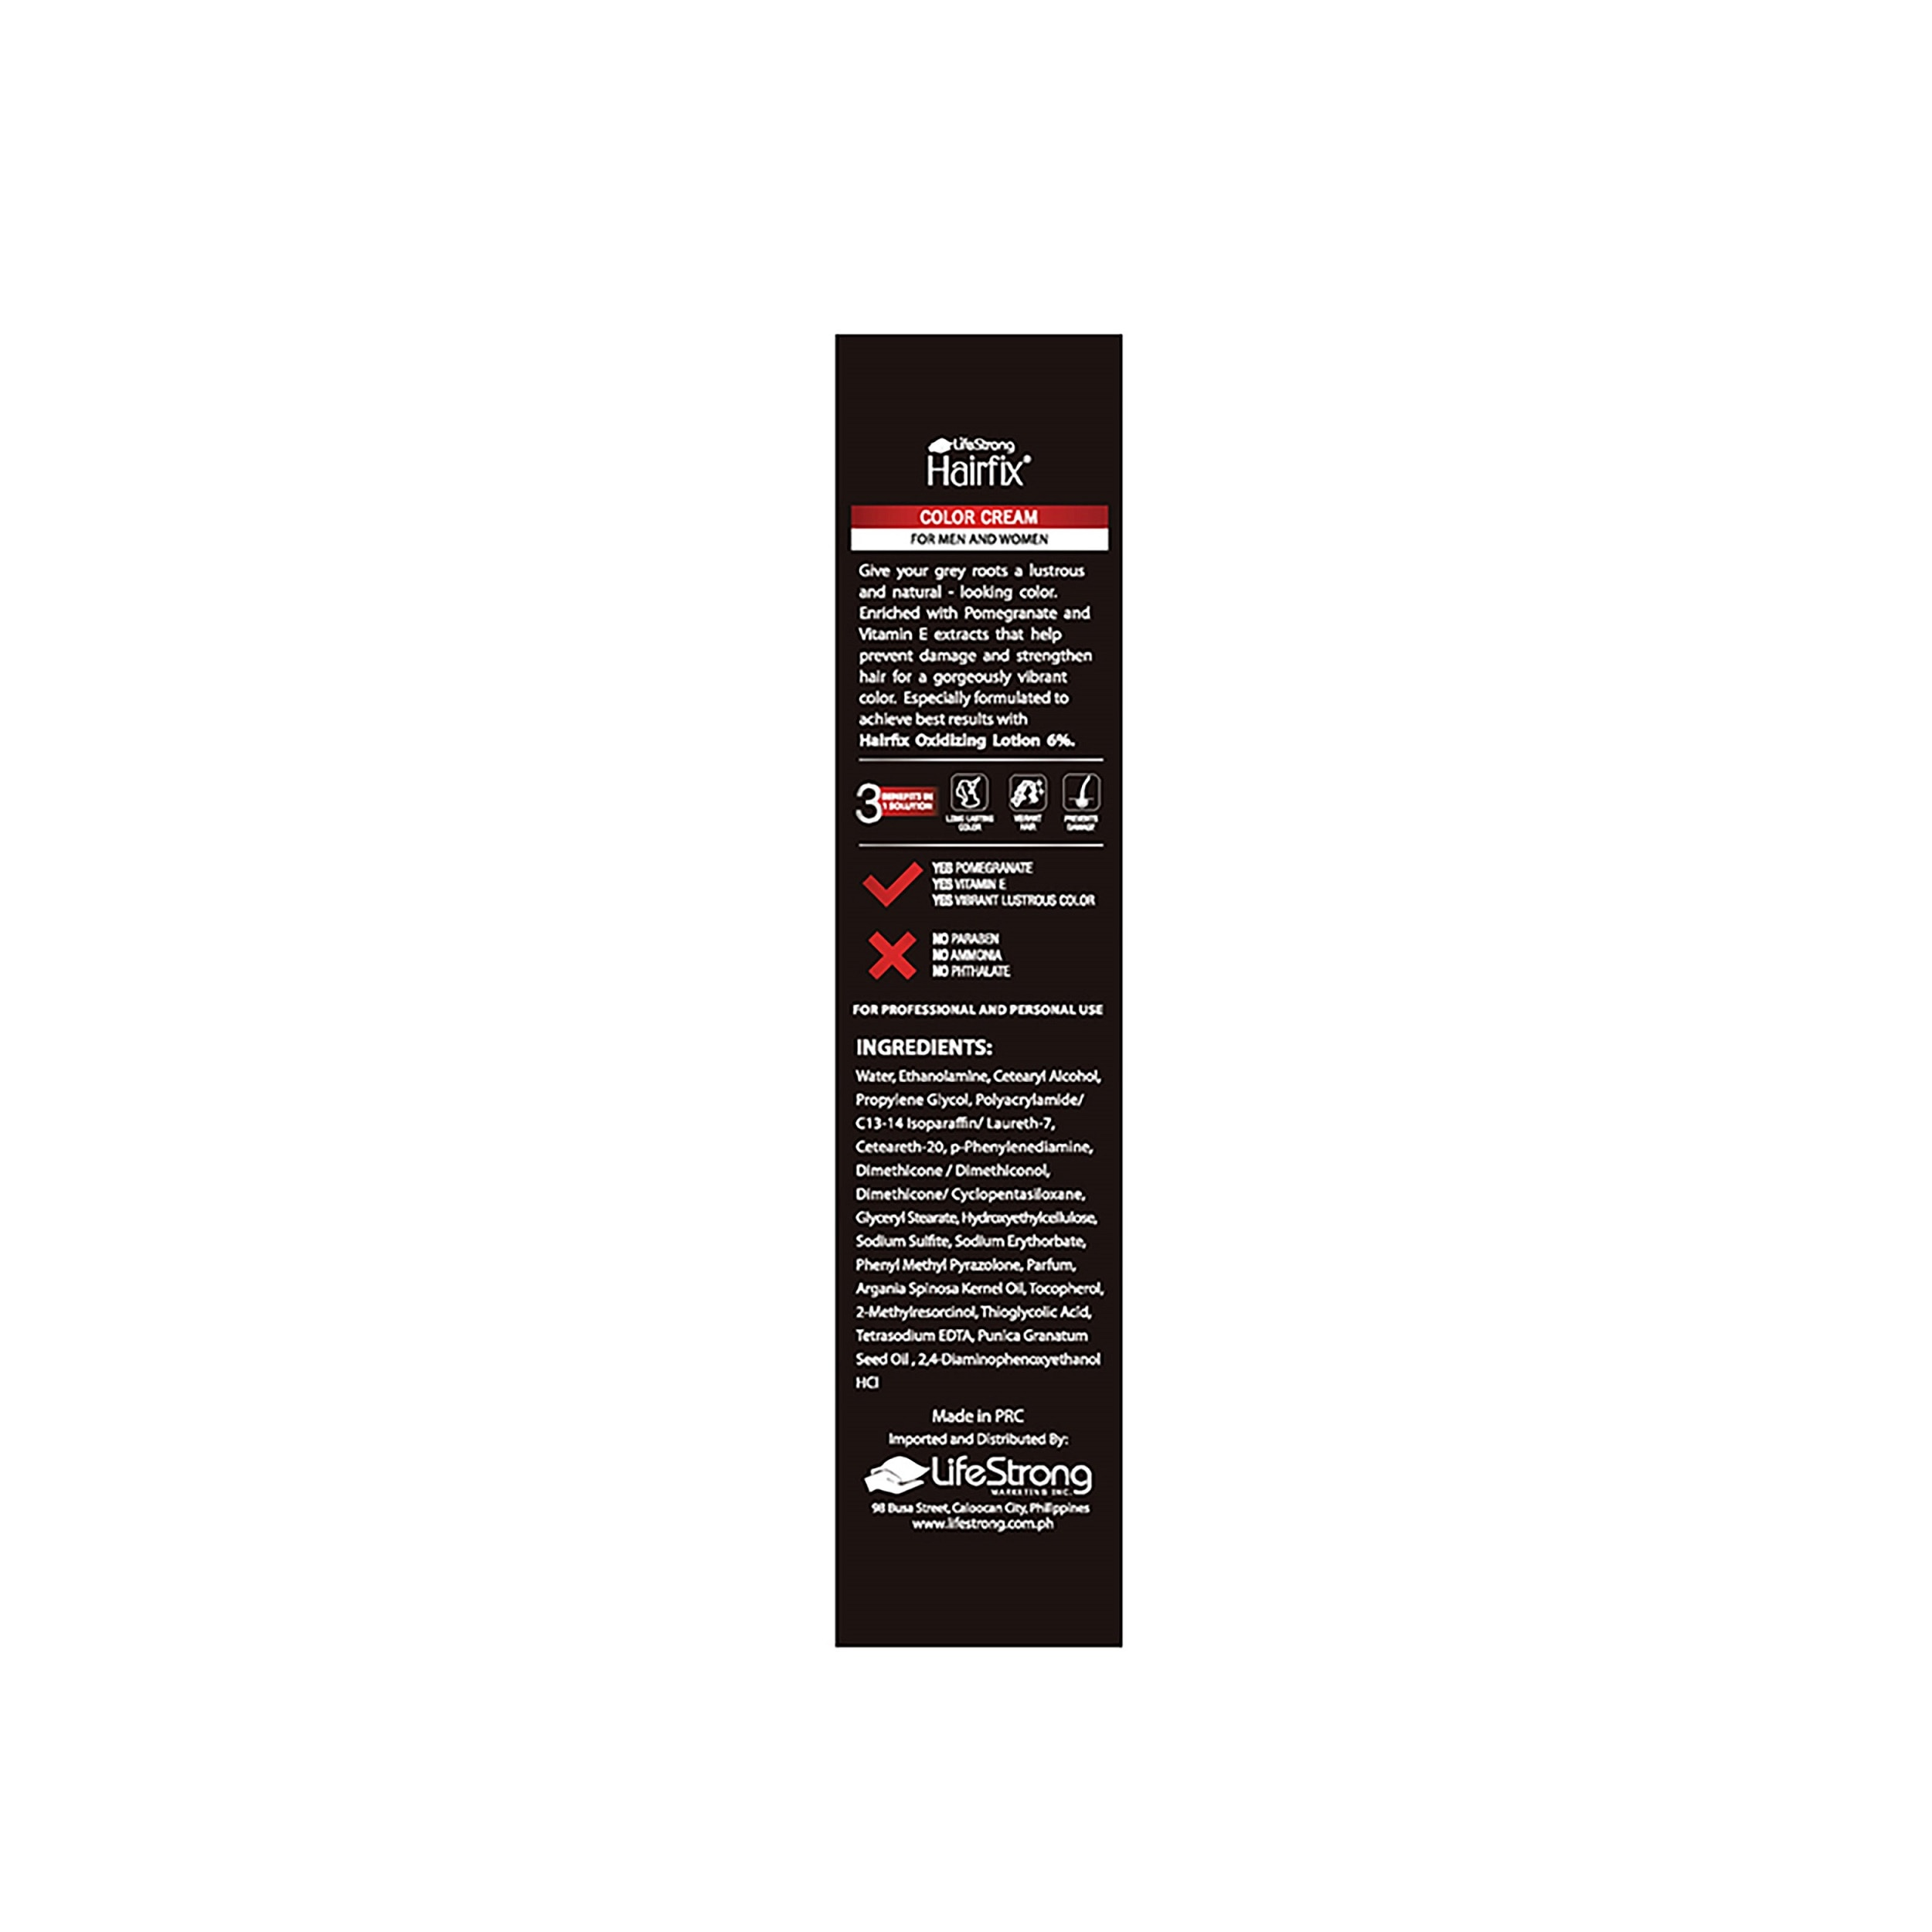 HAIRFIXColor Radiance Hair Coloring cream Deep Brown 1.2 60ML,-Permanent